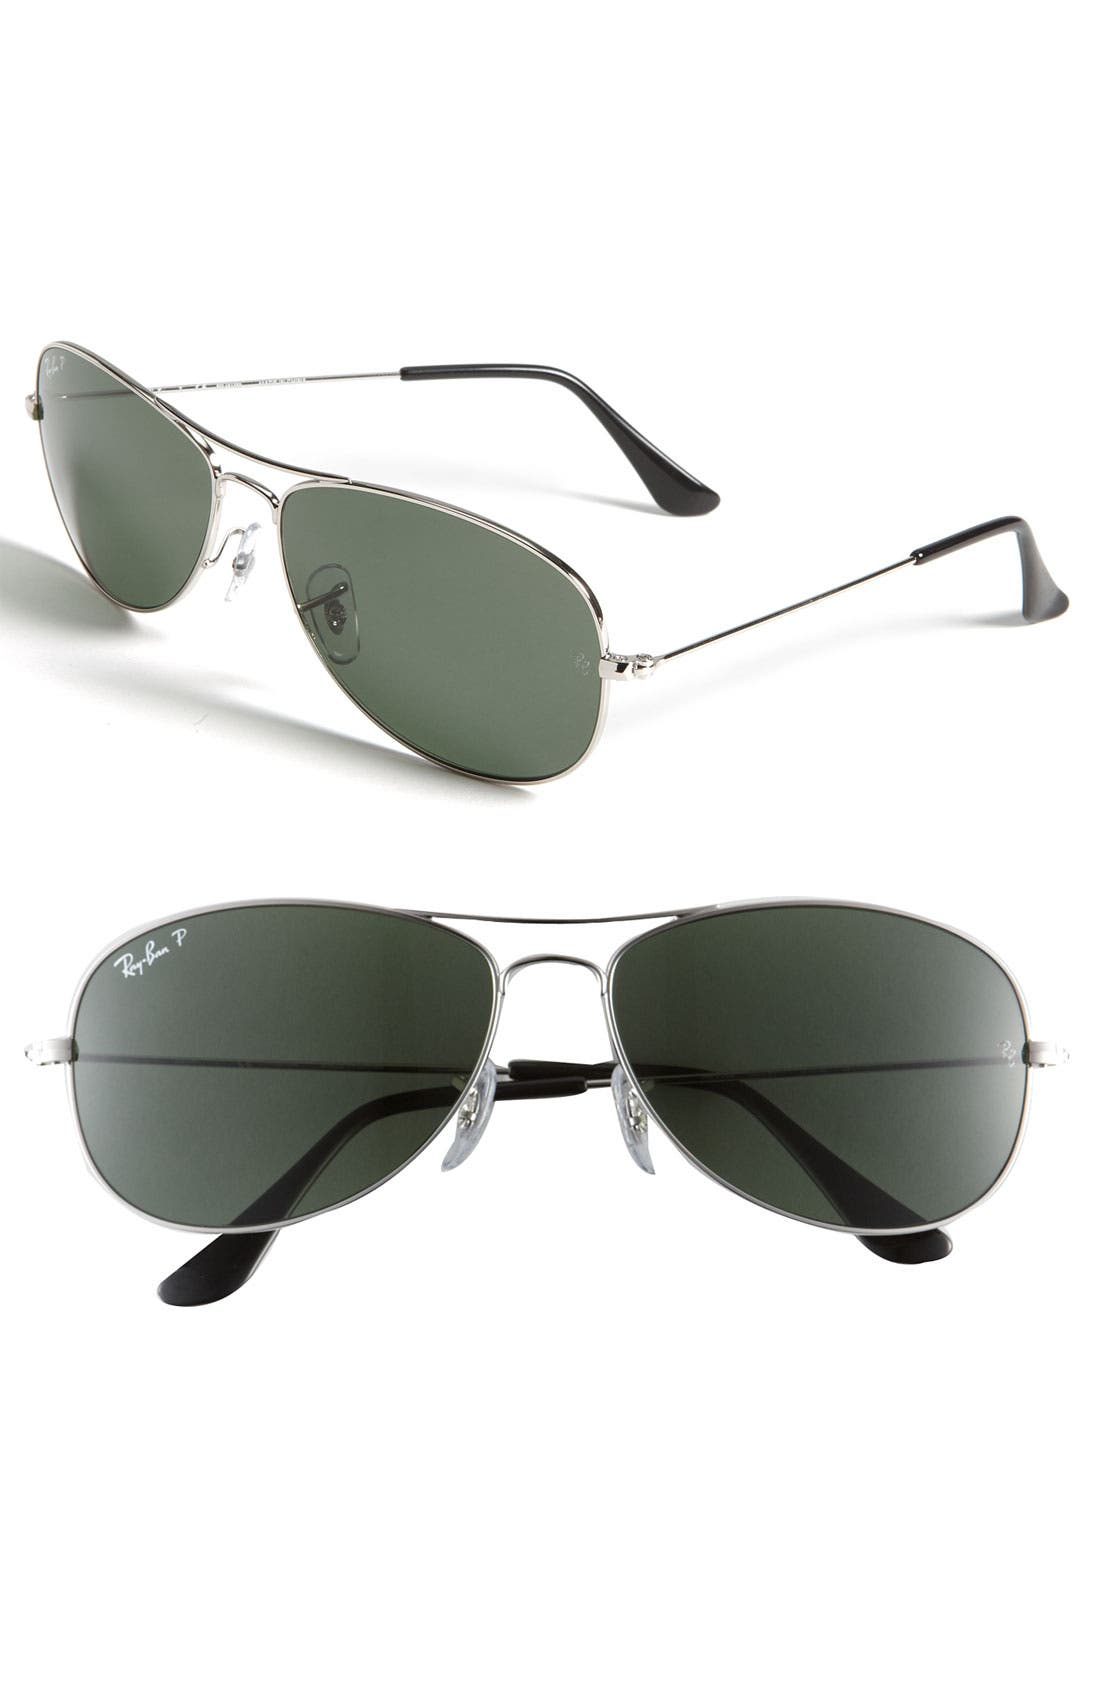 Main Image - Ray-Ban 'New Classic Aviator' 59mm Polarized Sunglasses